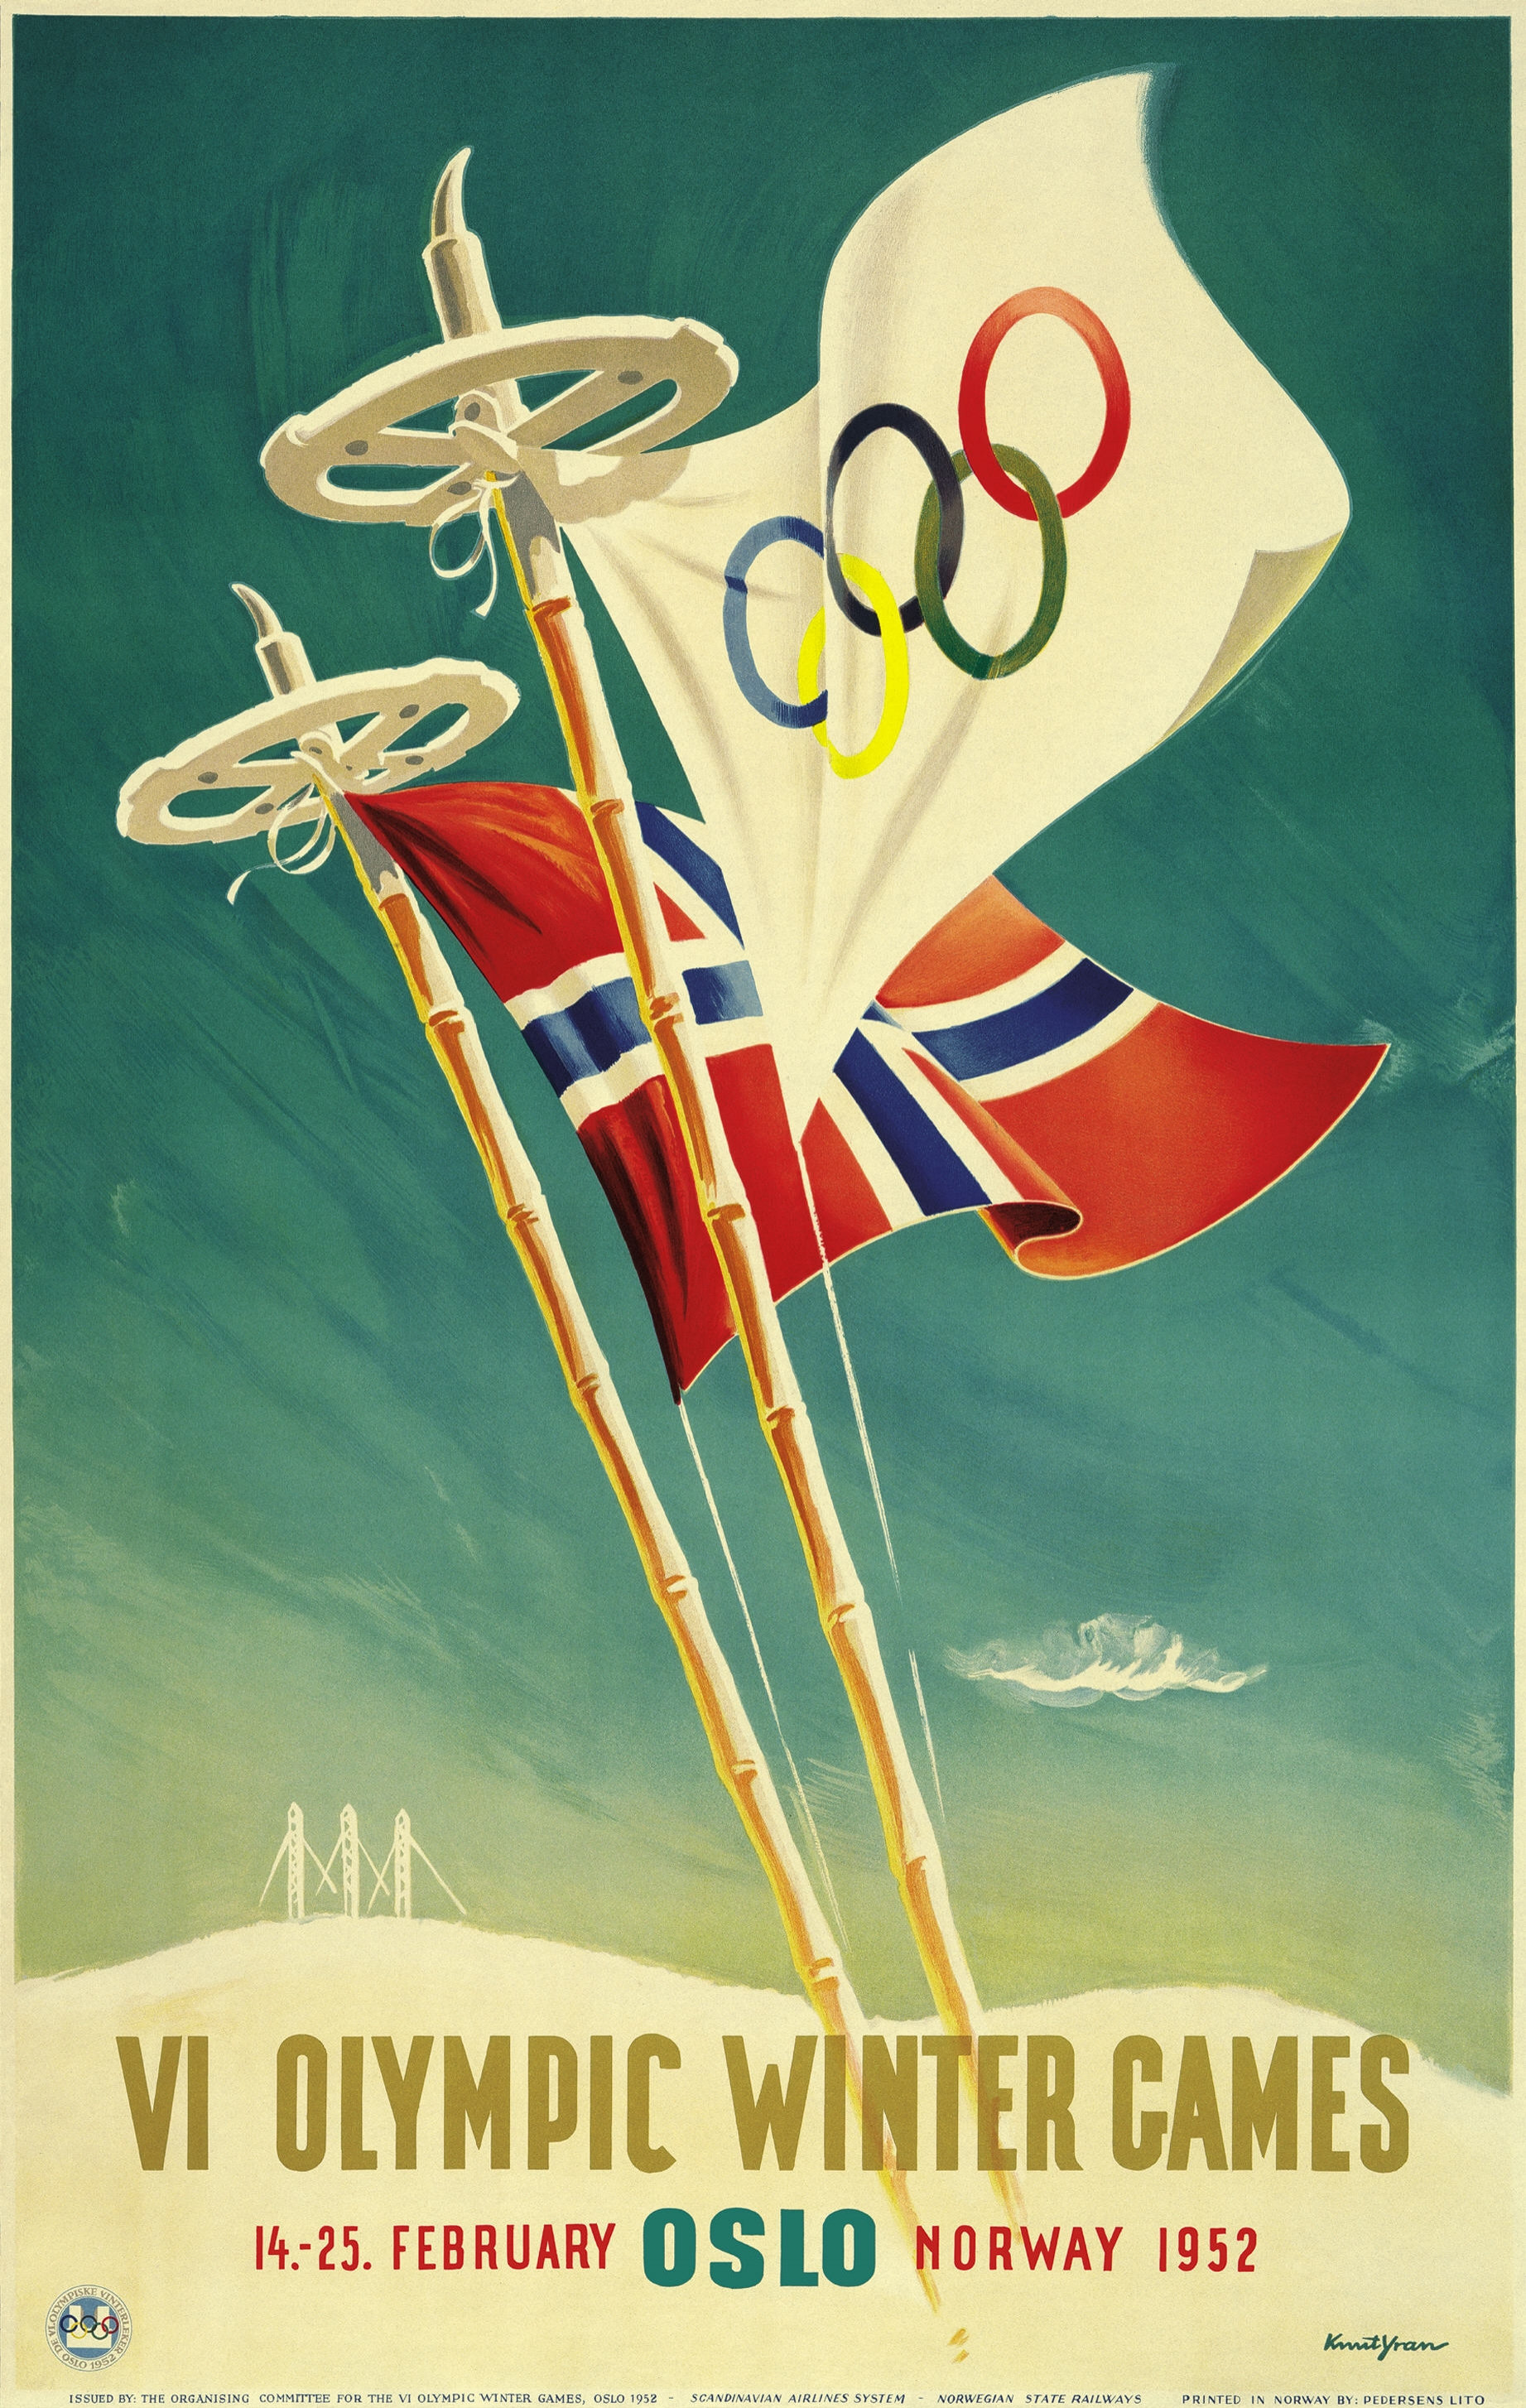 Advertising poster of the Winter Olympic Games in Oslo (Norway), 1952